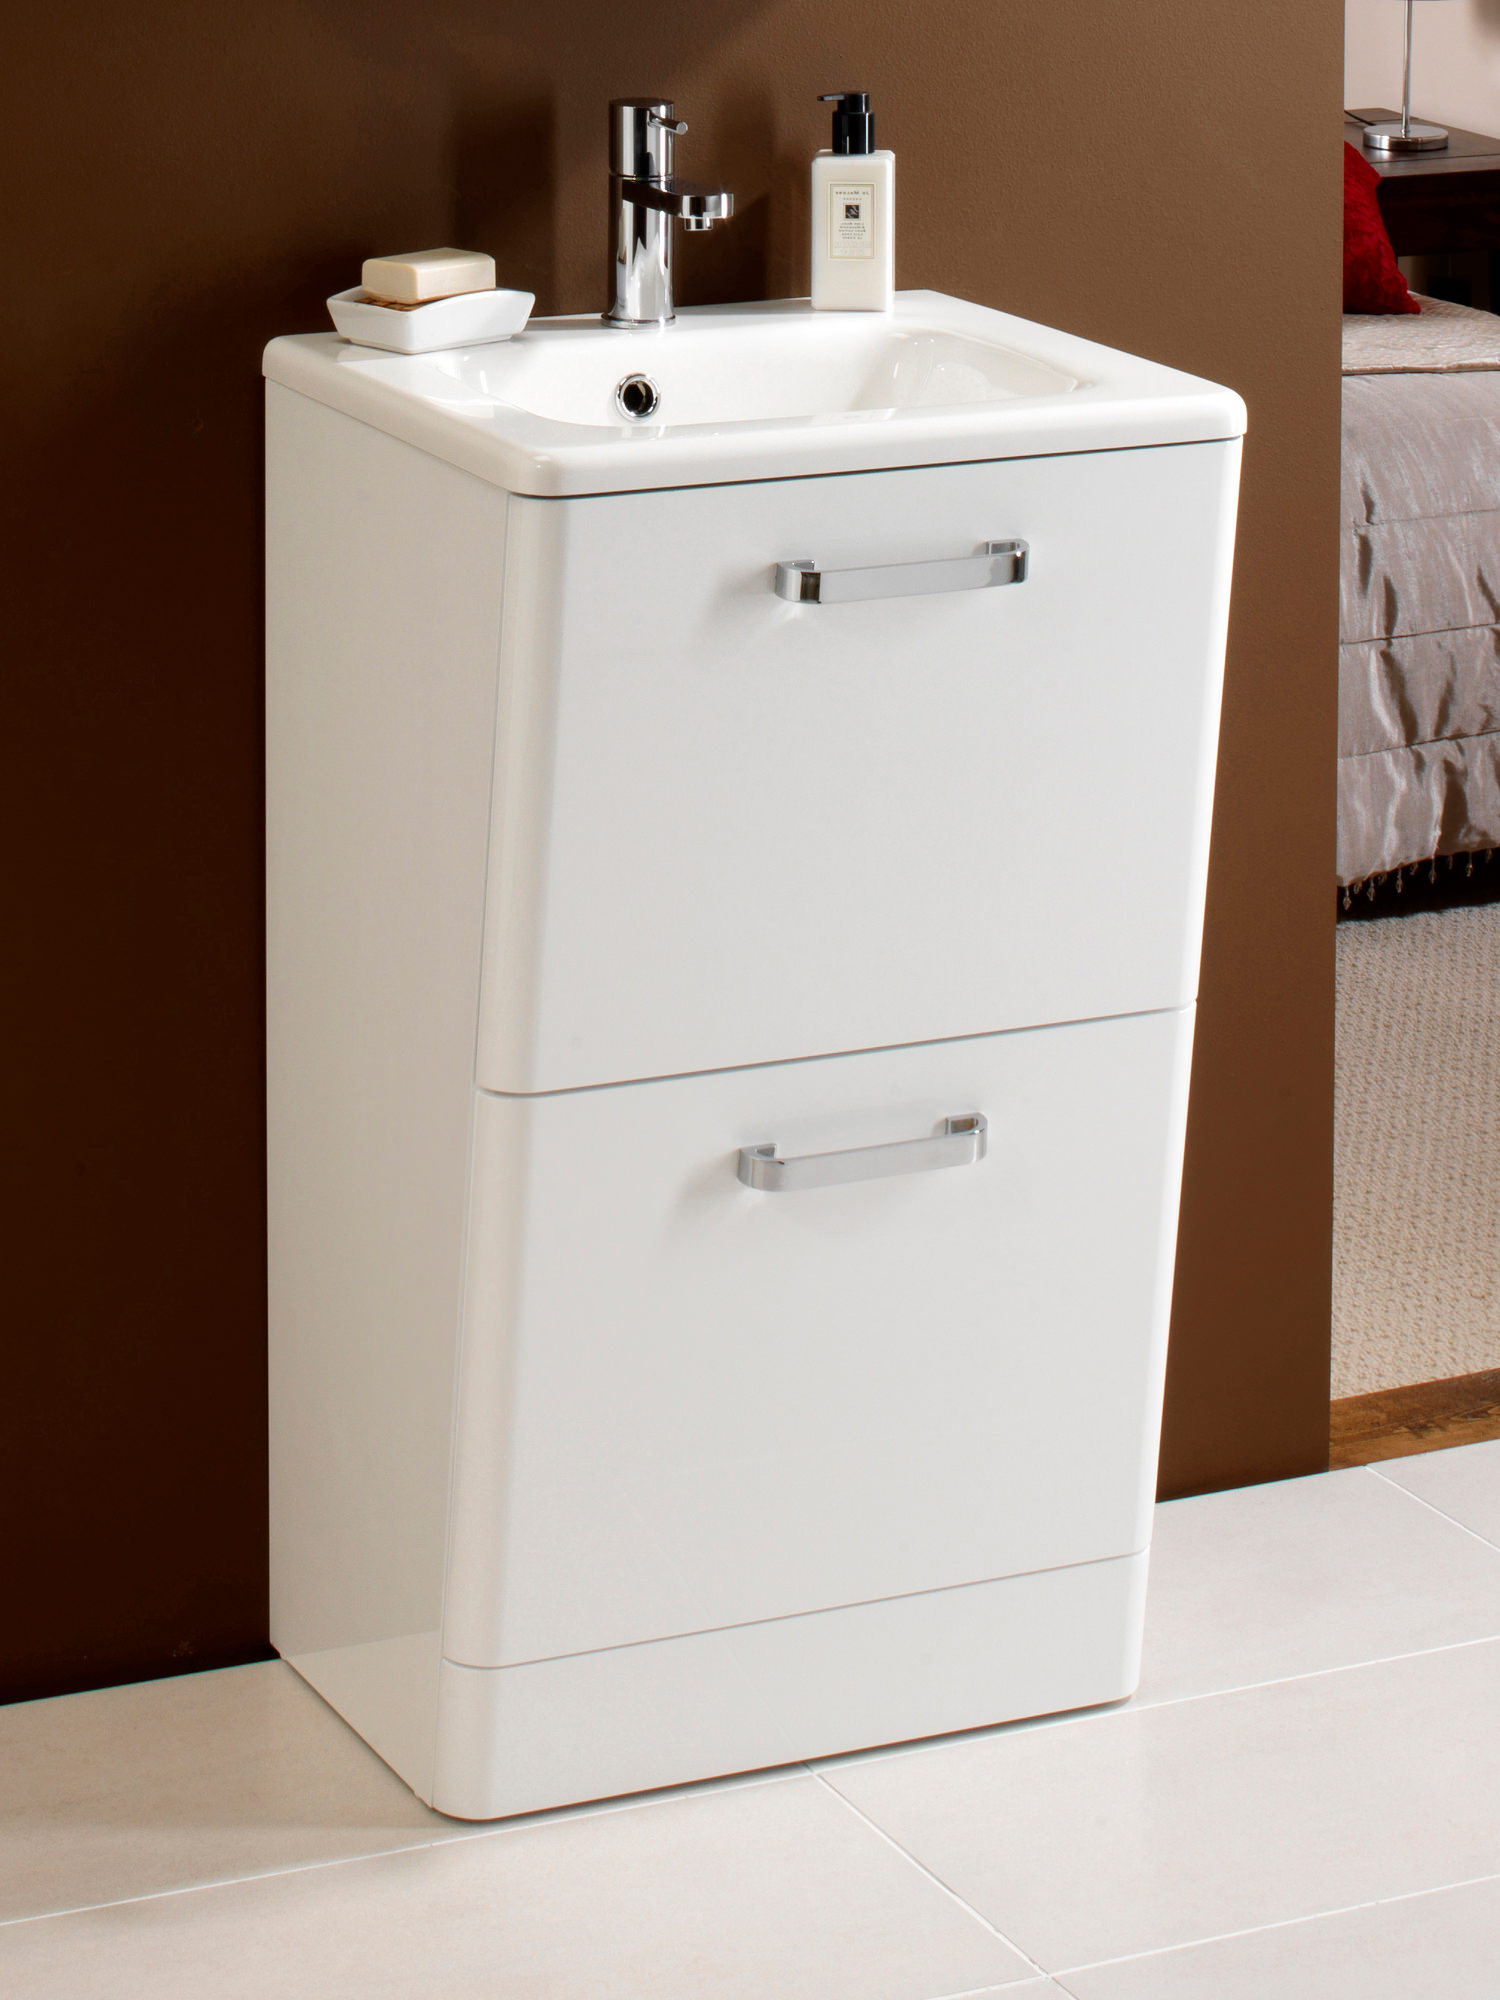 Hib palamas floor standing vanity unit and basin 500mm white for Floor standing bathroom furniture